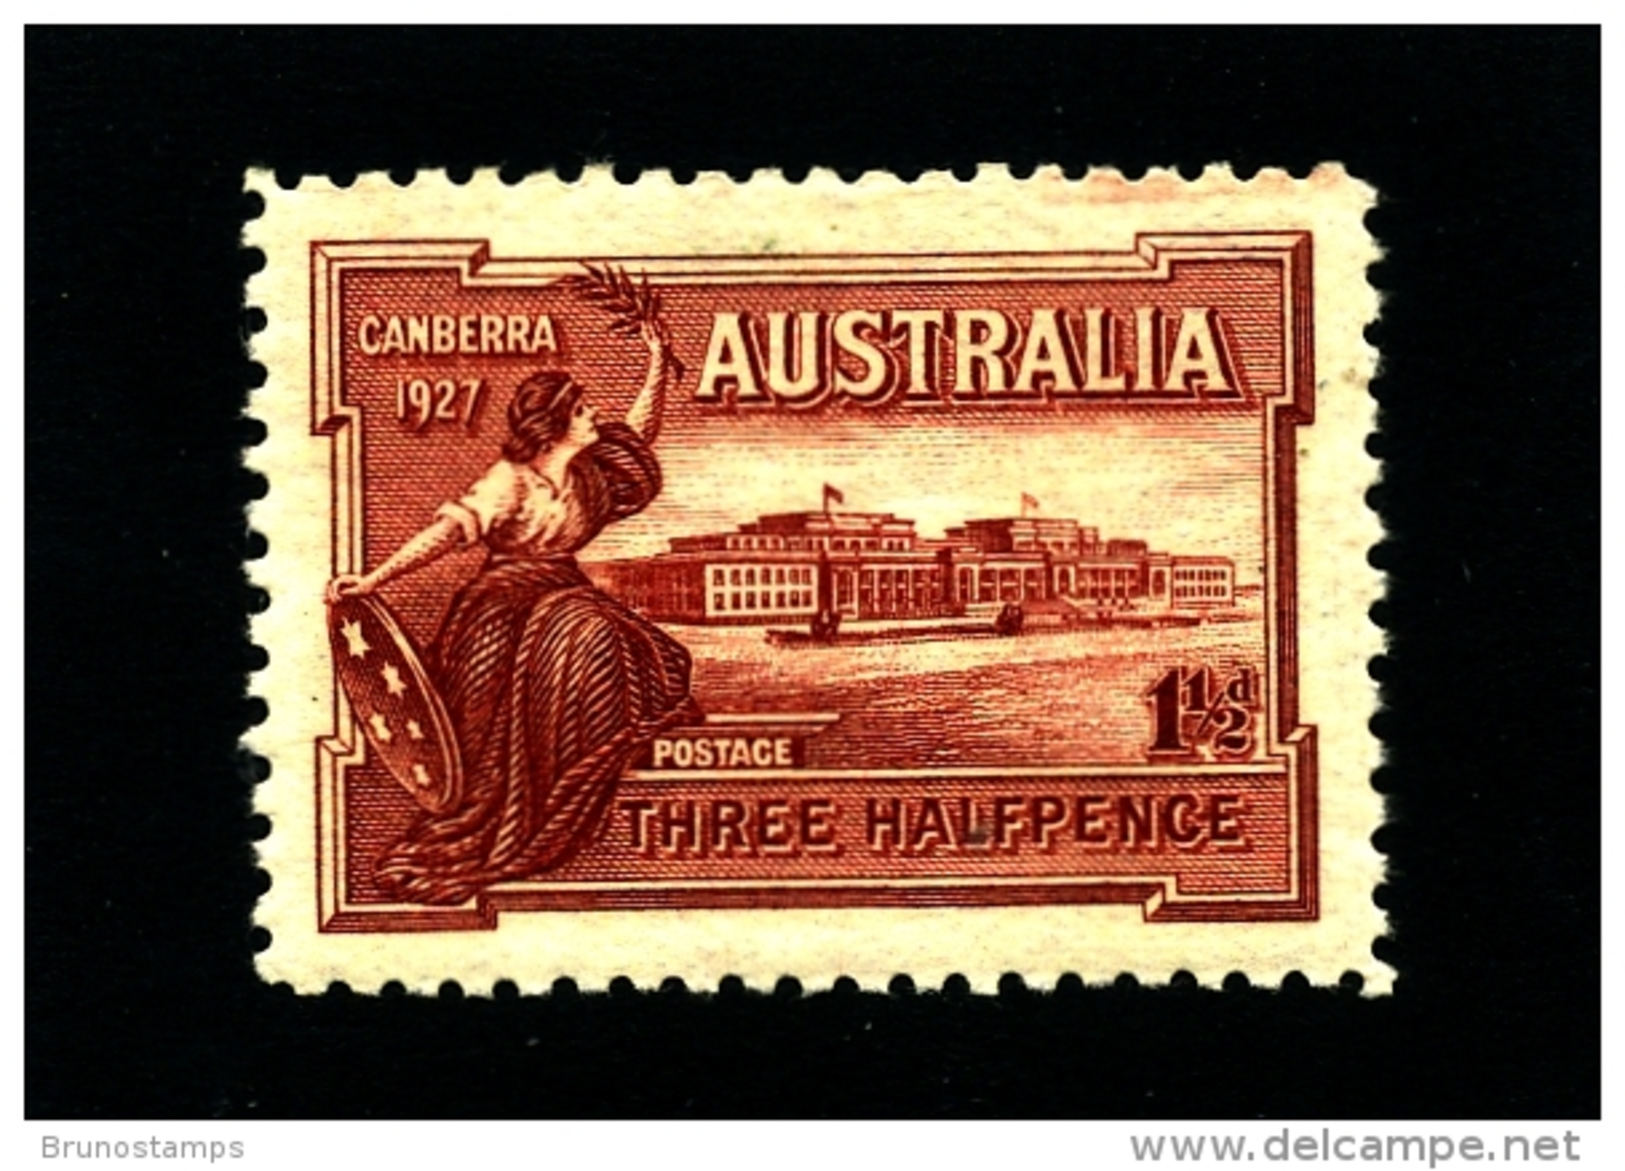 AUSTRALIA - 1927  1 1/2 D  CANBERRA  MINT NH  SG 105 - 1913-36 George V : Other Issues